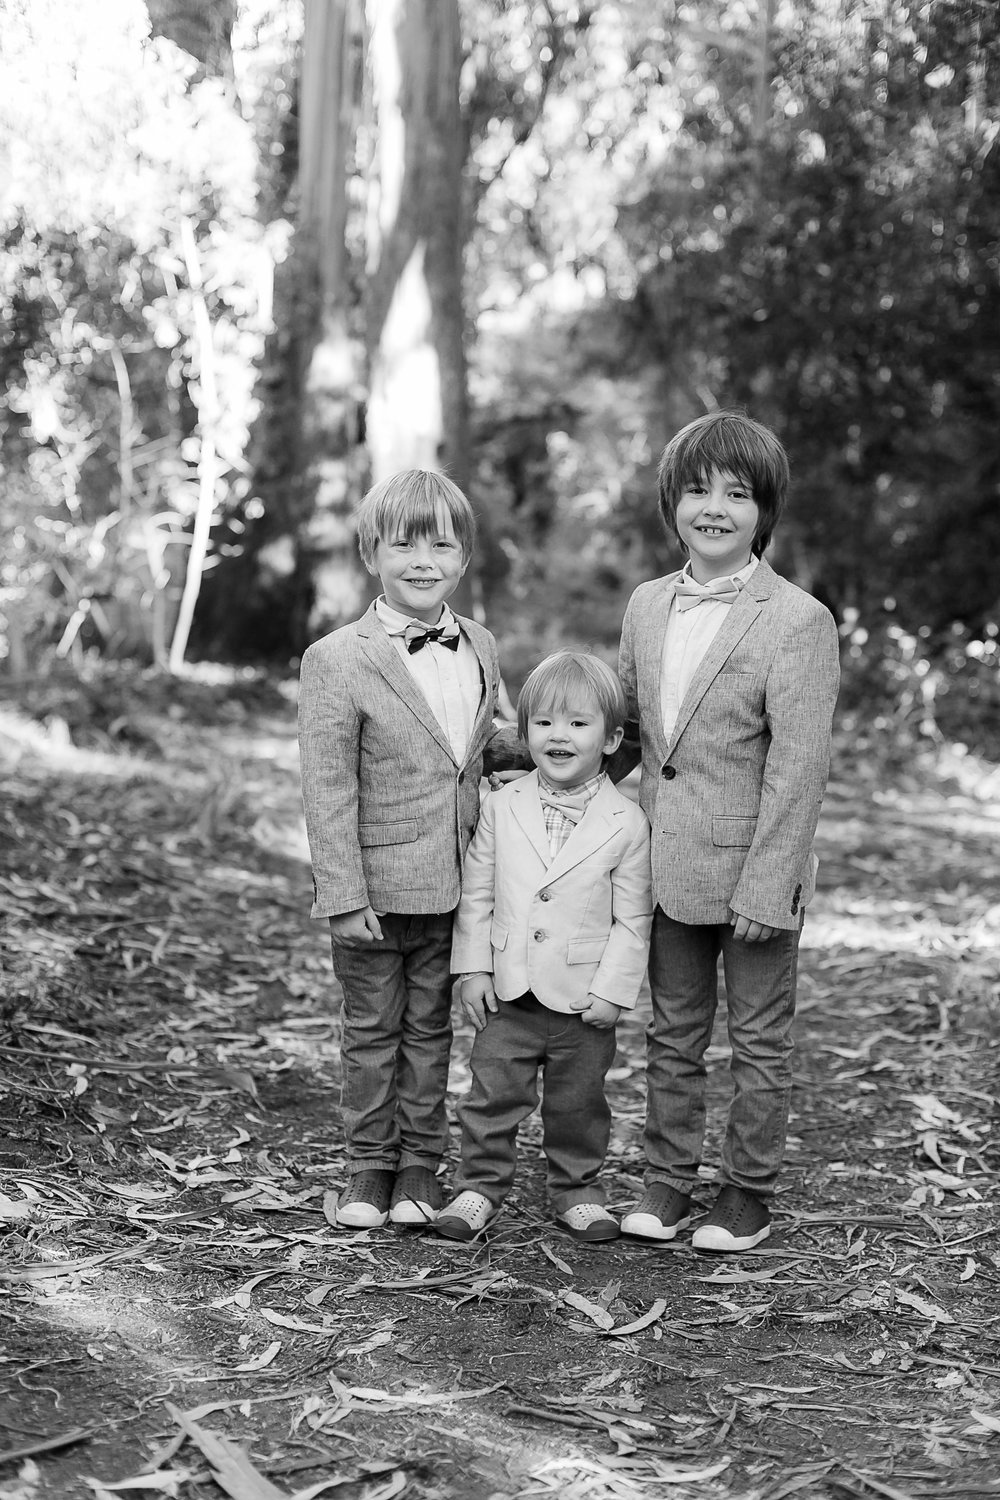 San_Francisco_Children_and_Family_Portrait_003.jpg